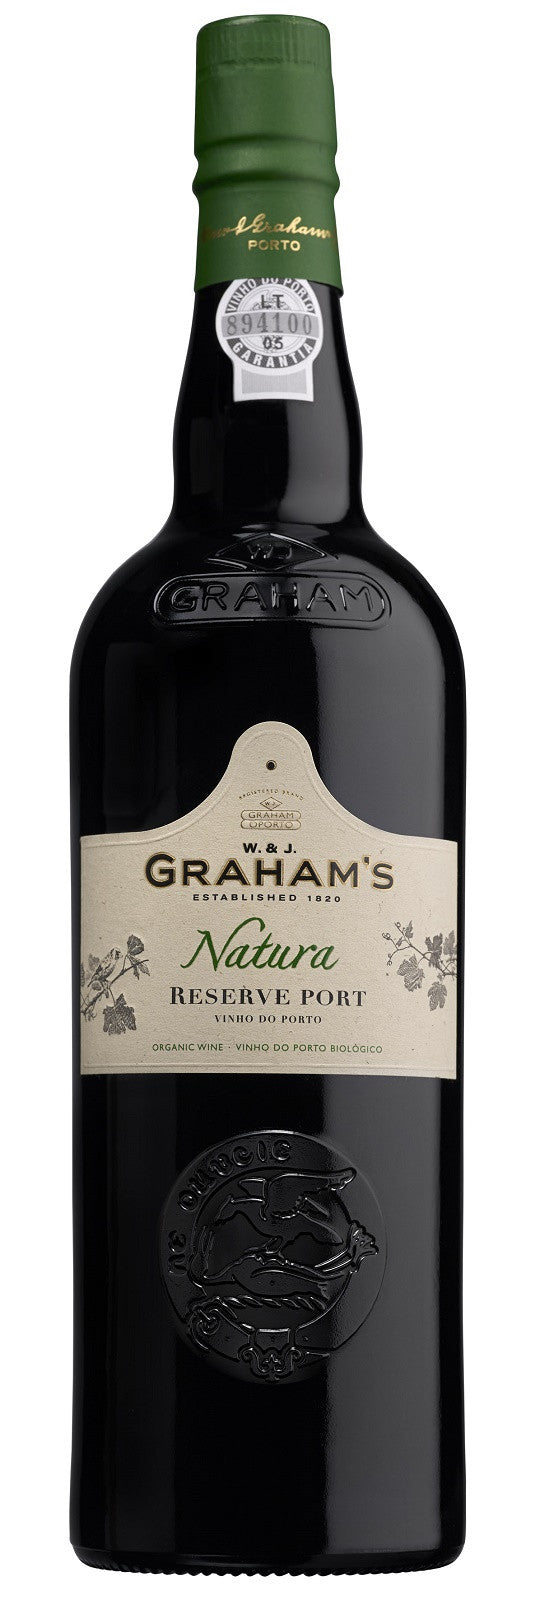 Vinho do Porto Reserva Natura . Graham's